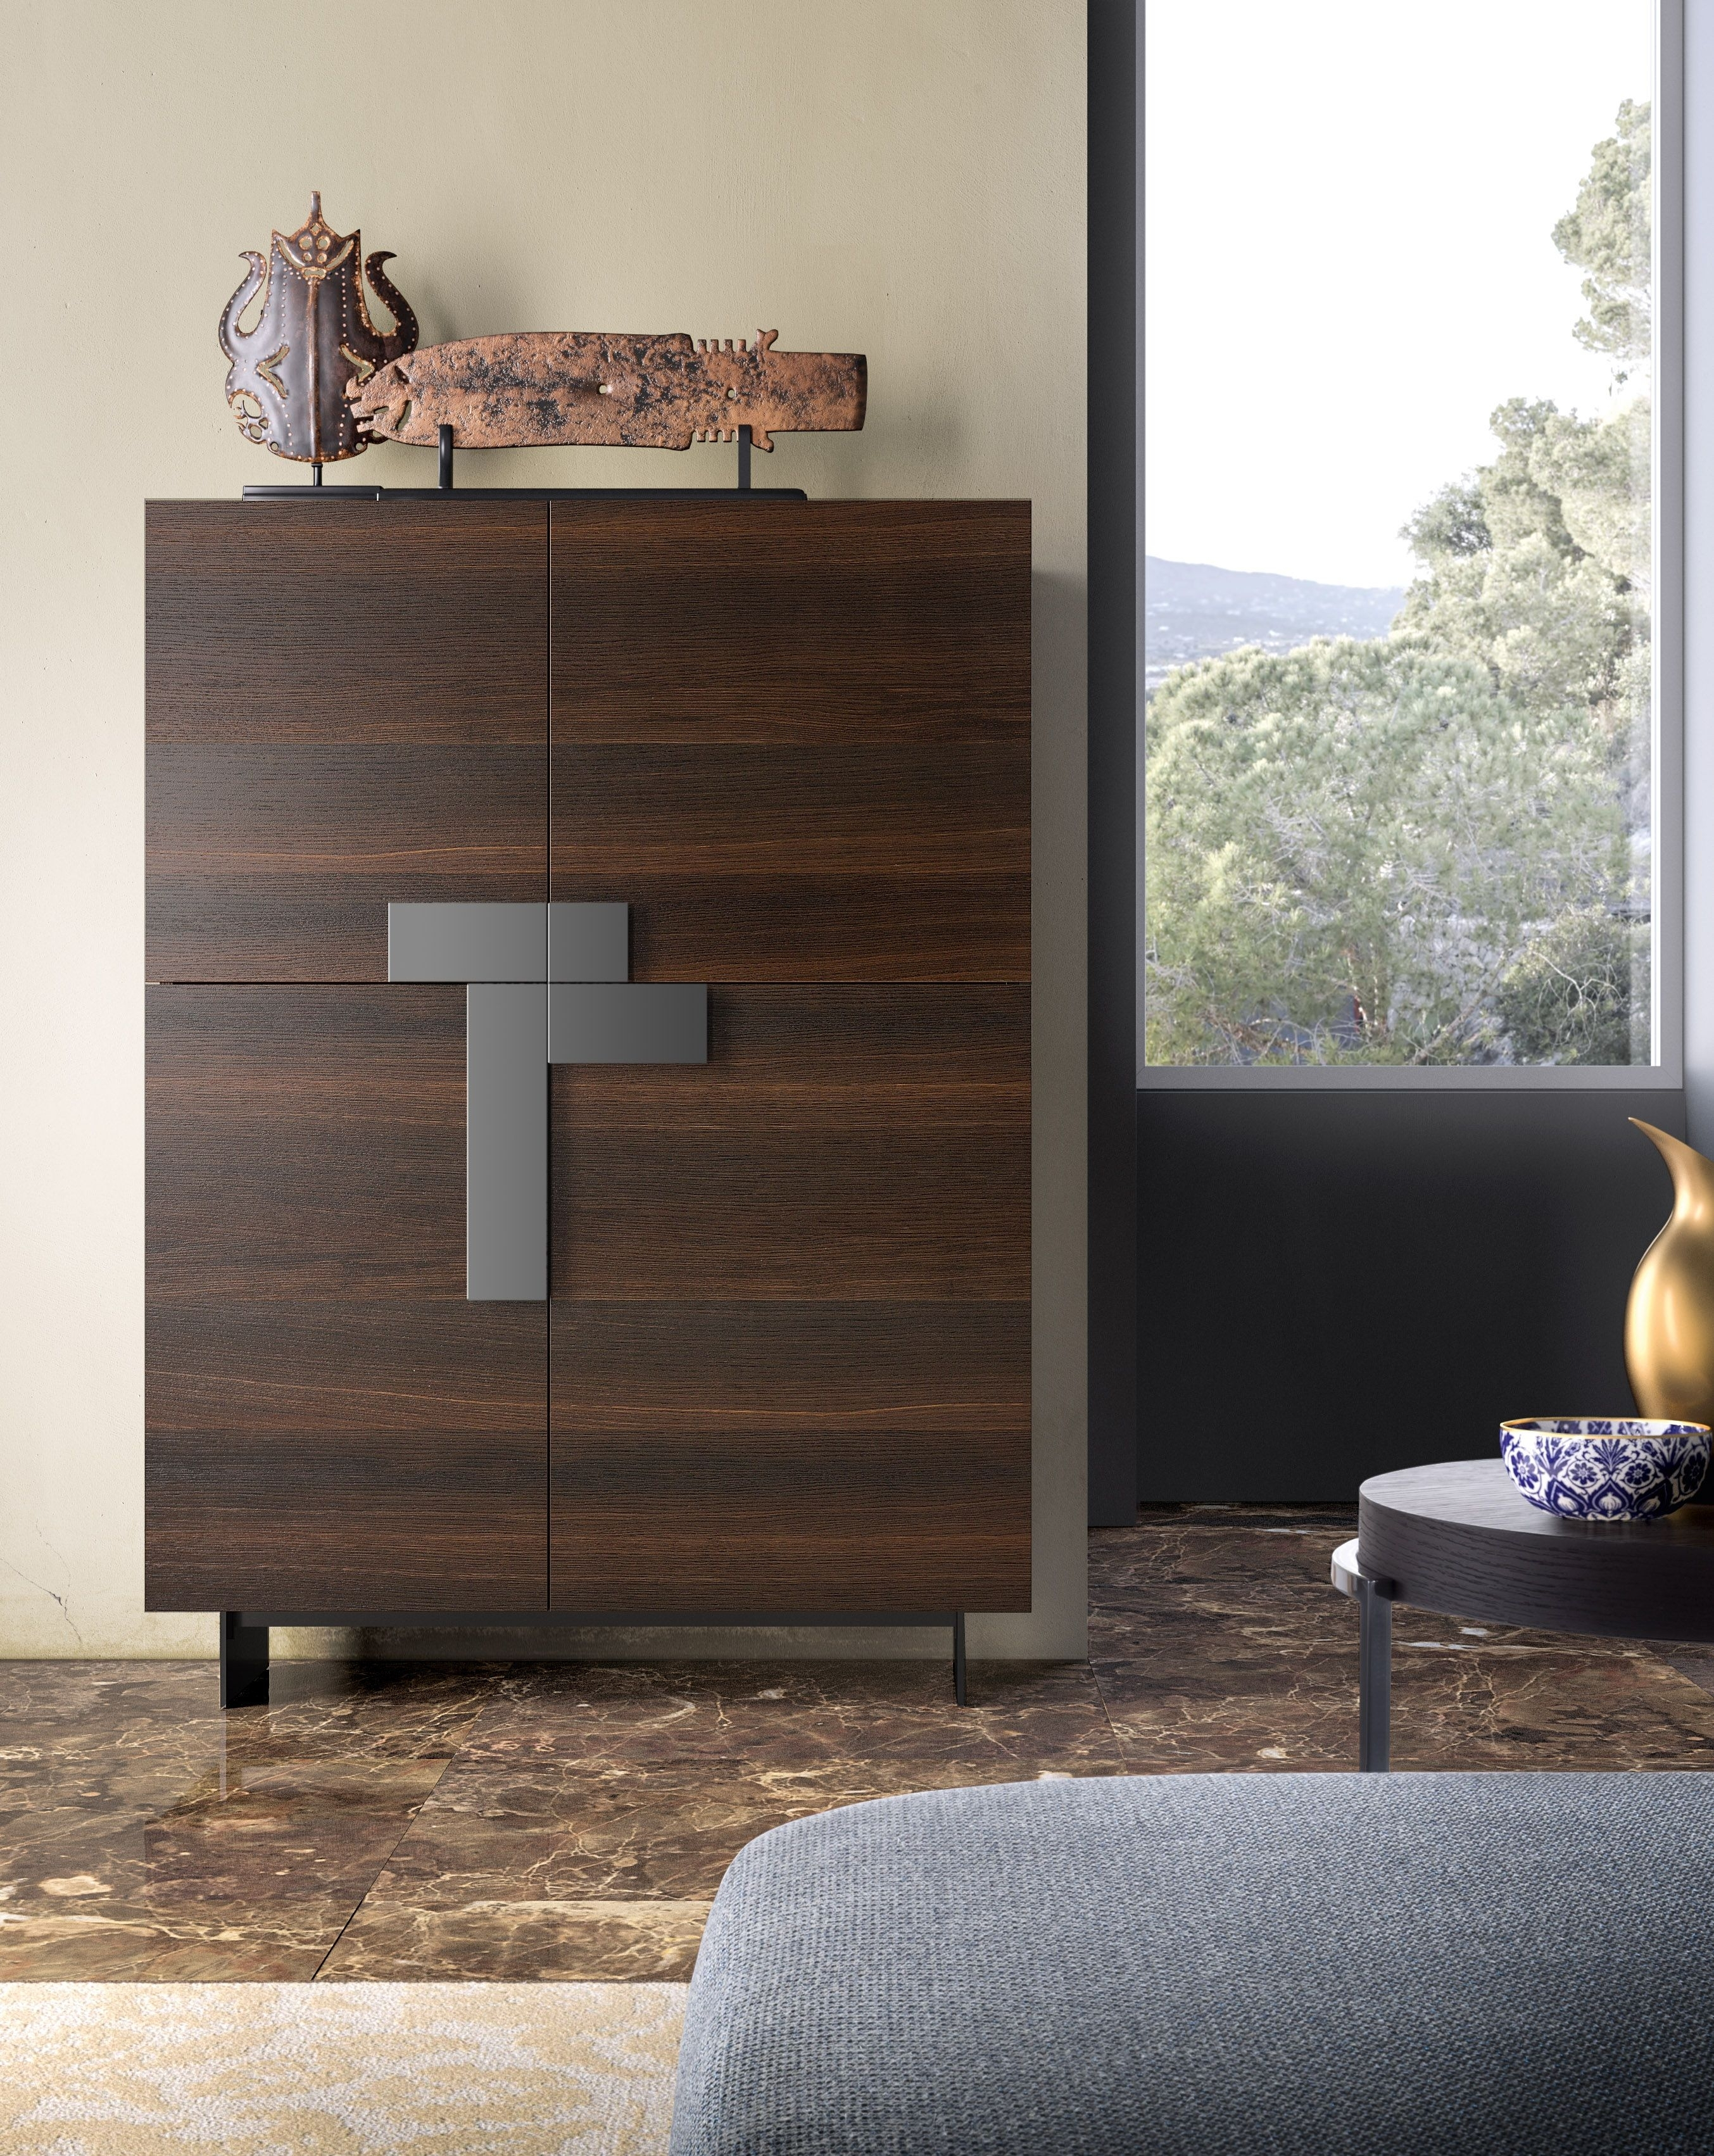 Inspiration about Ginevra Sideboard With Burnt Oak Structure And Fronts, Titanium Pertaining To Recent Black Burnt Oak Sideboards (#2 of 20)